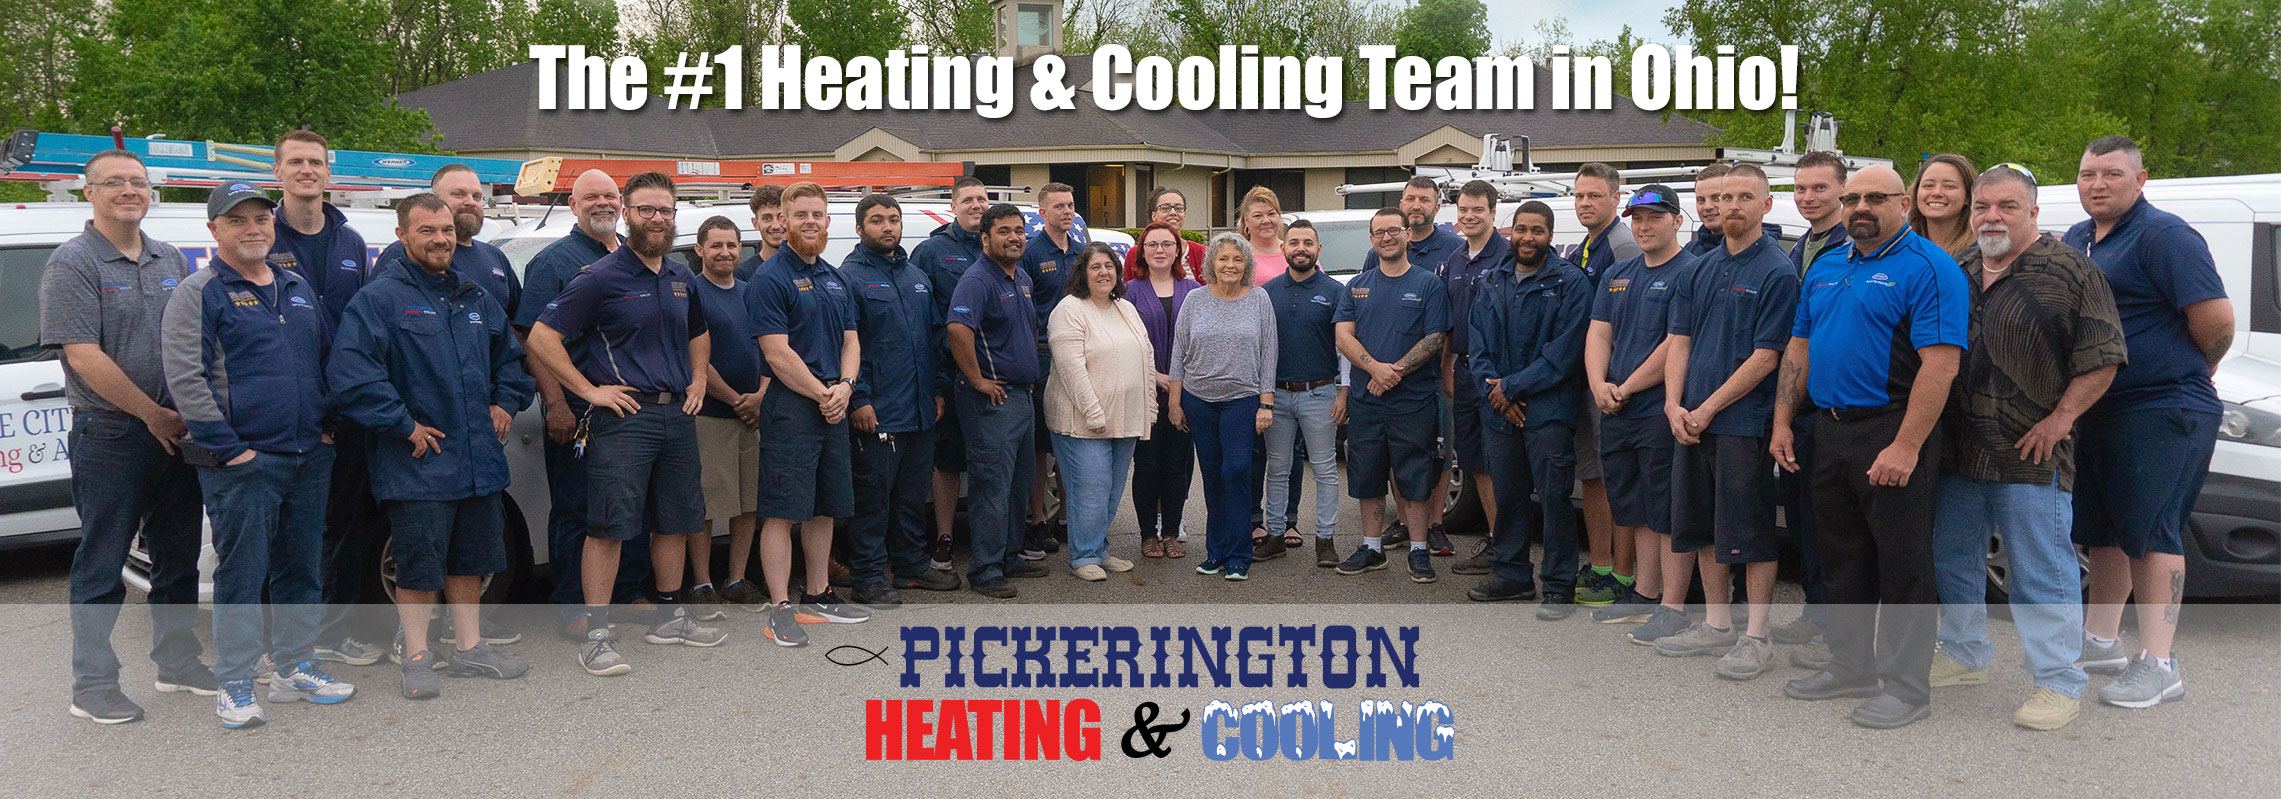 Pickerington Heating & Cooling | #1 HVAC Contractor in Ohio